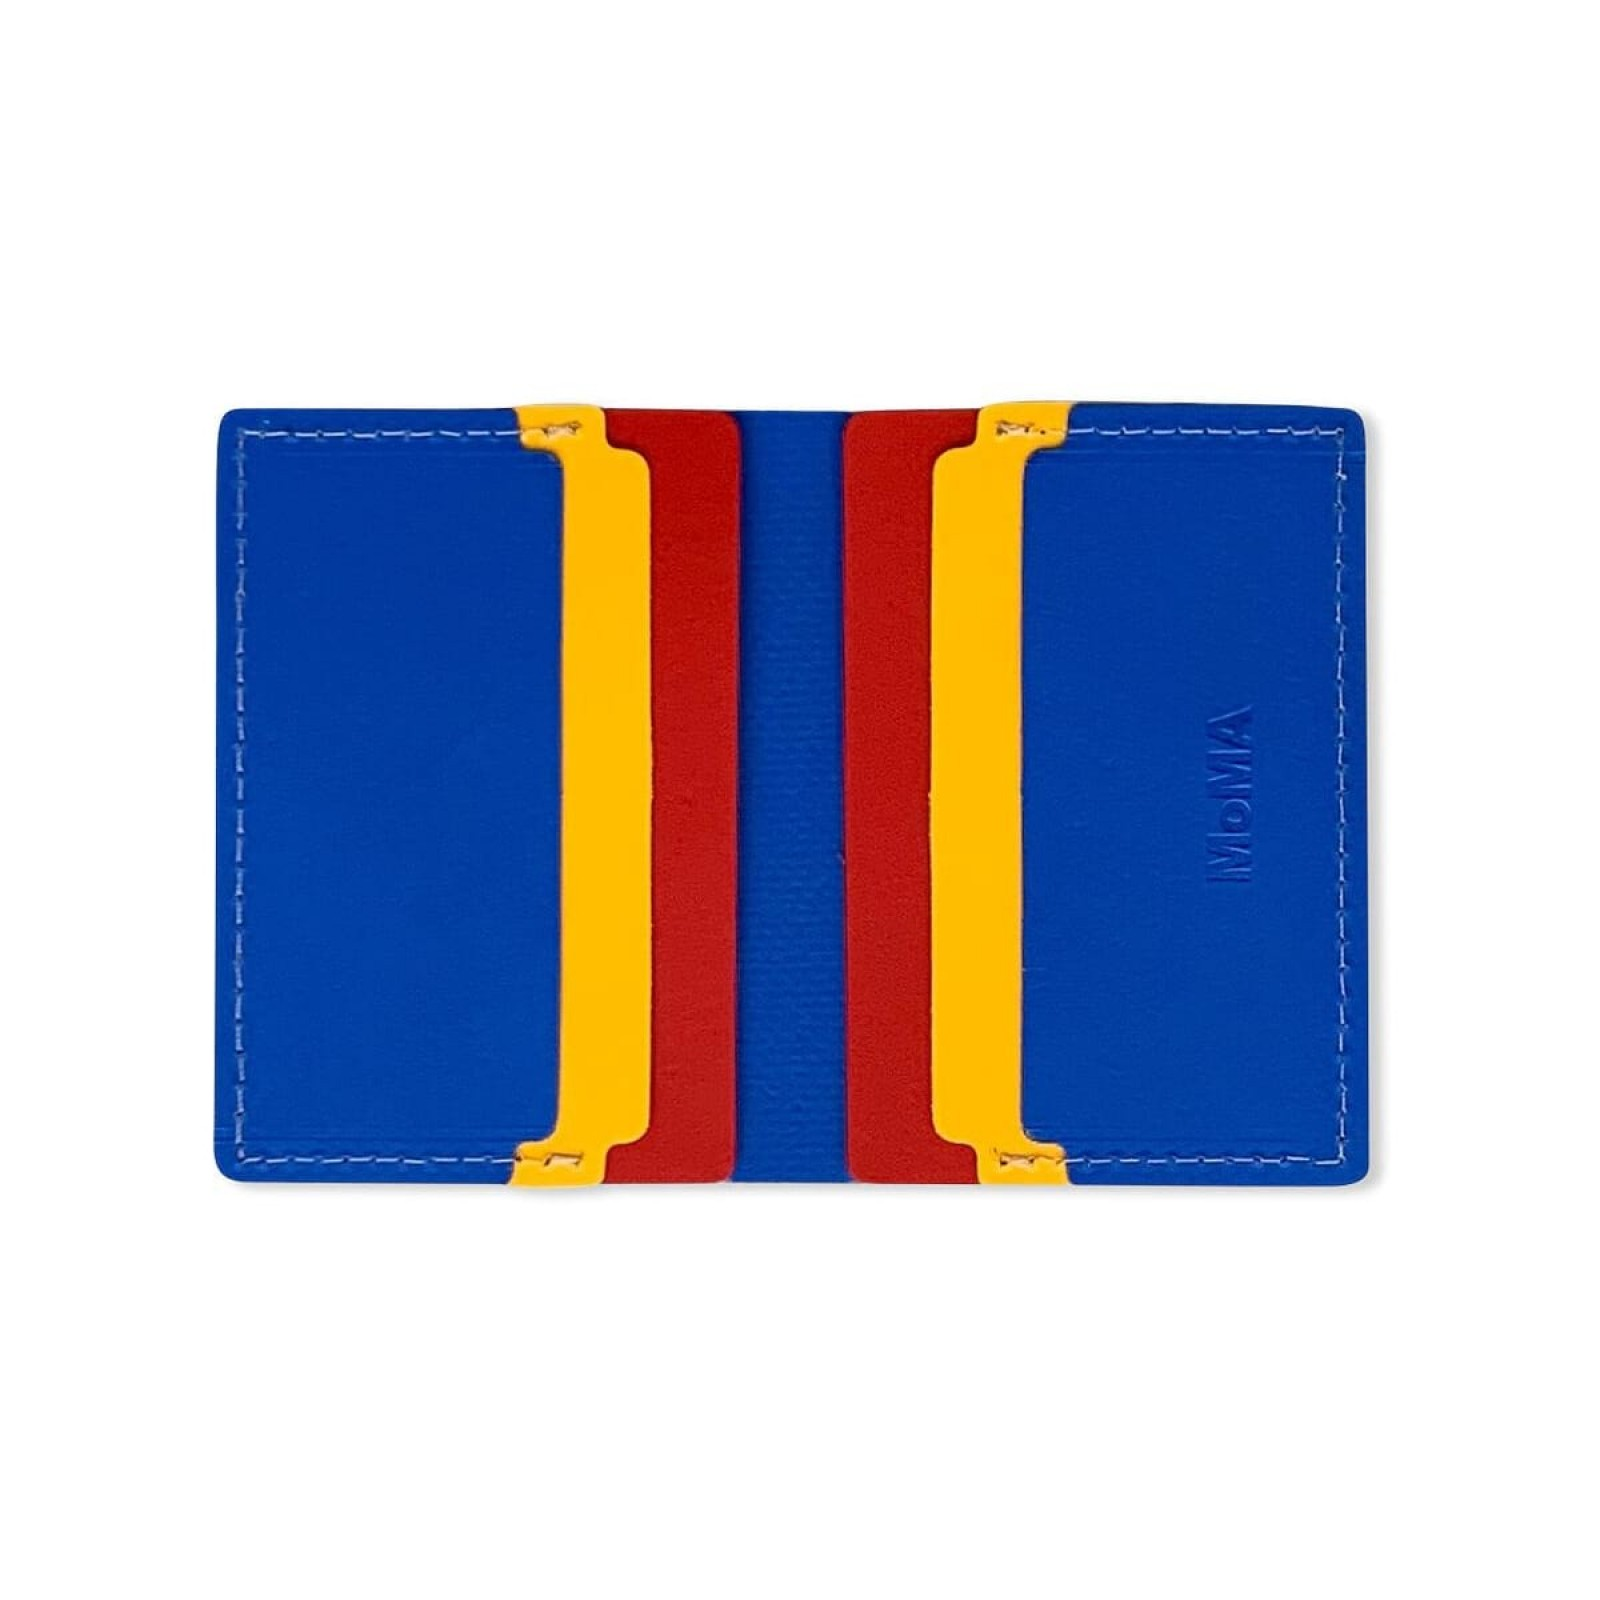 Primary Recycled Leather Wallet (Blue / Red) - MoMa